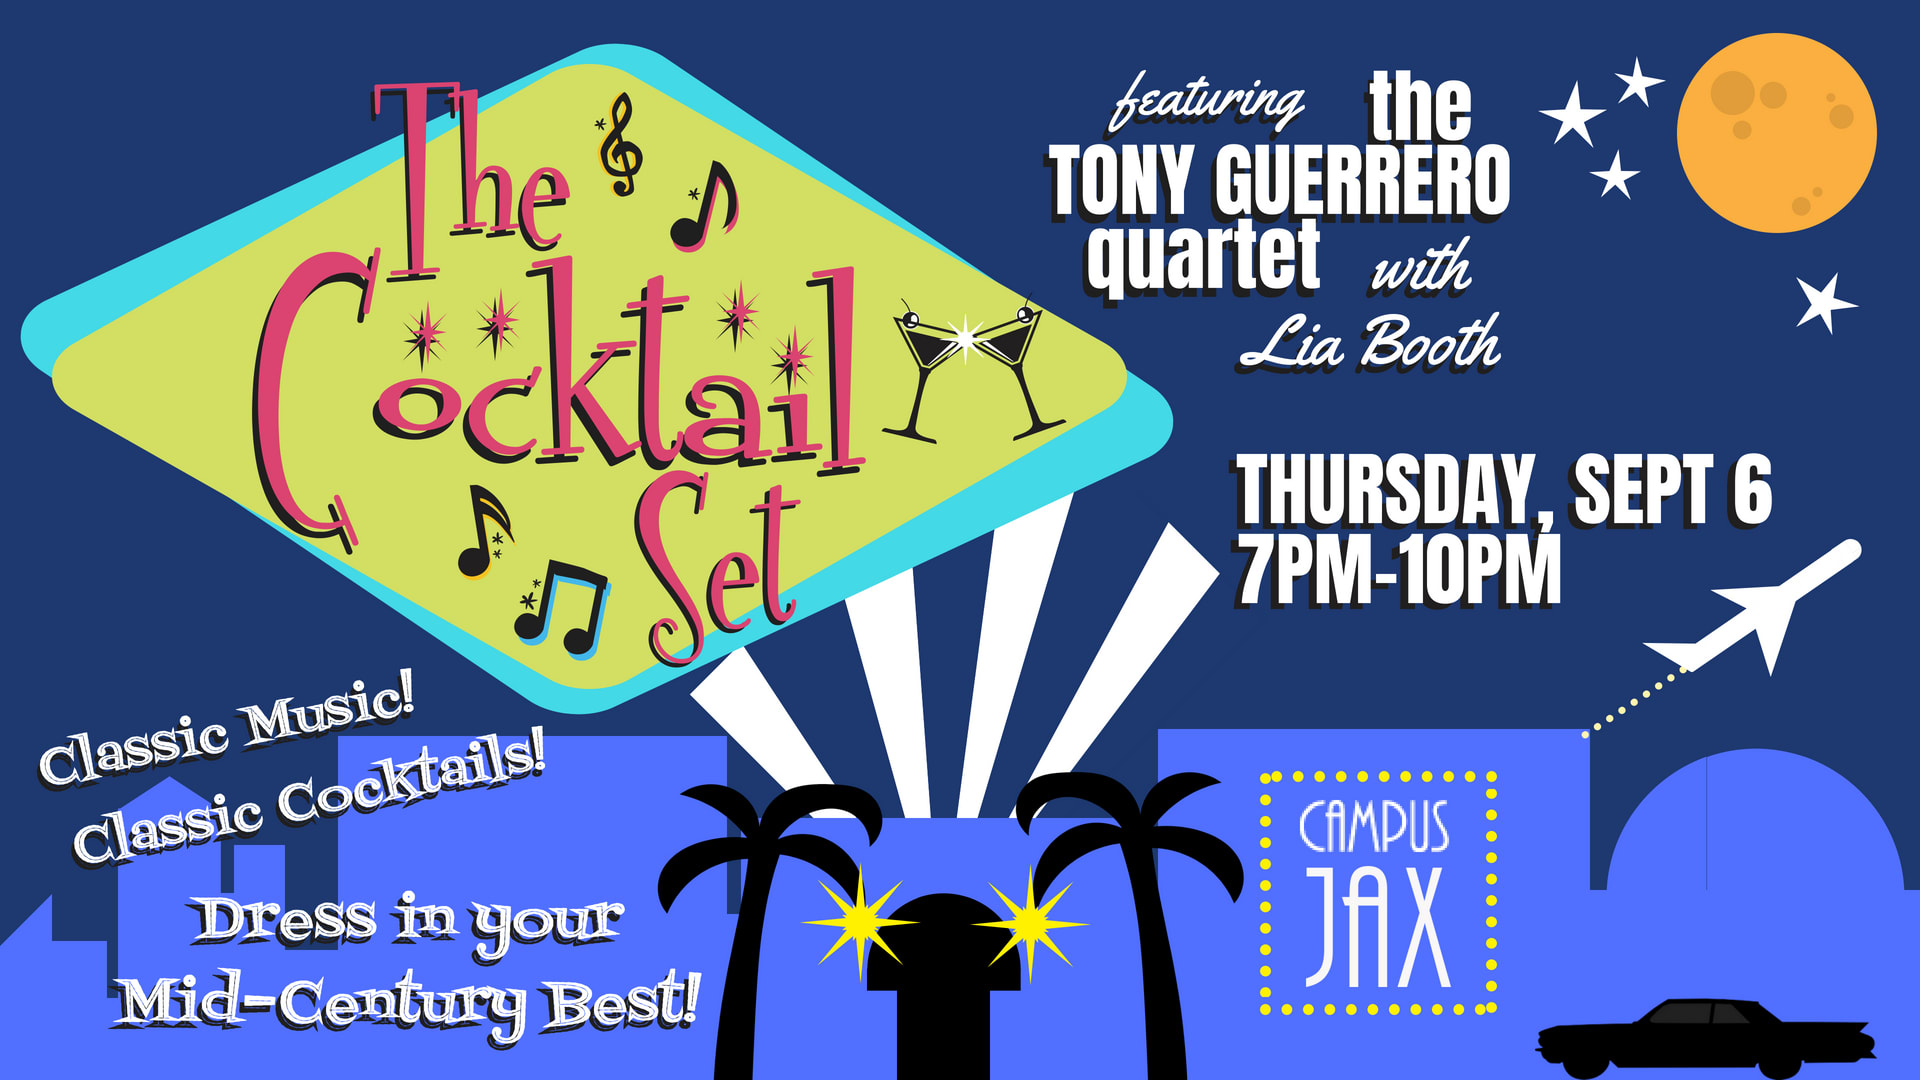 September 6 | THE COCKTAIL SET with THE TONY GUERRERO QUARTET